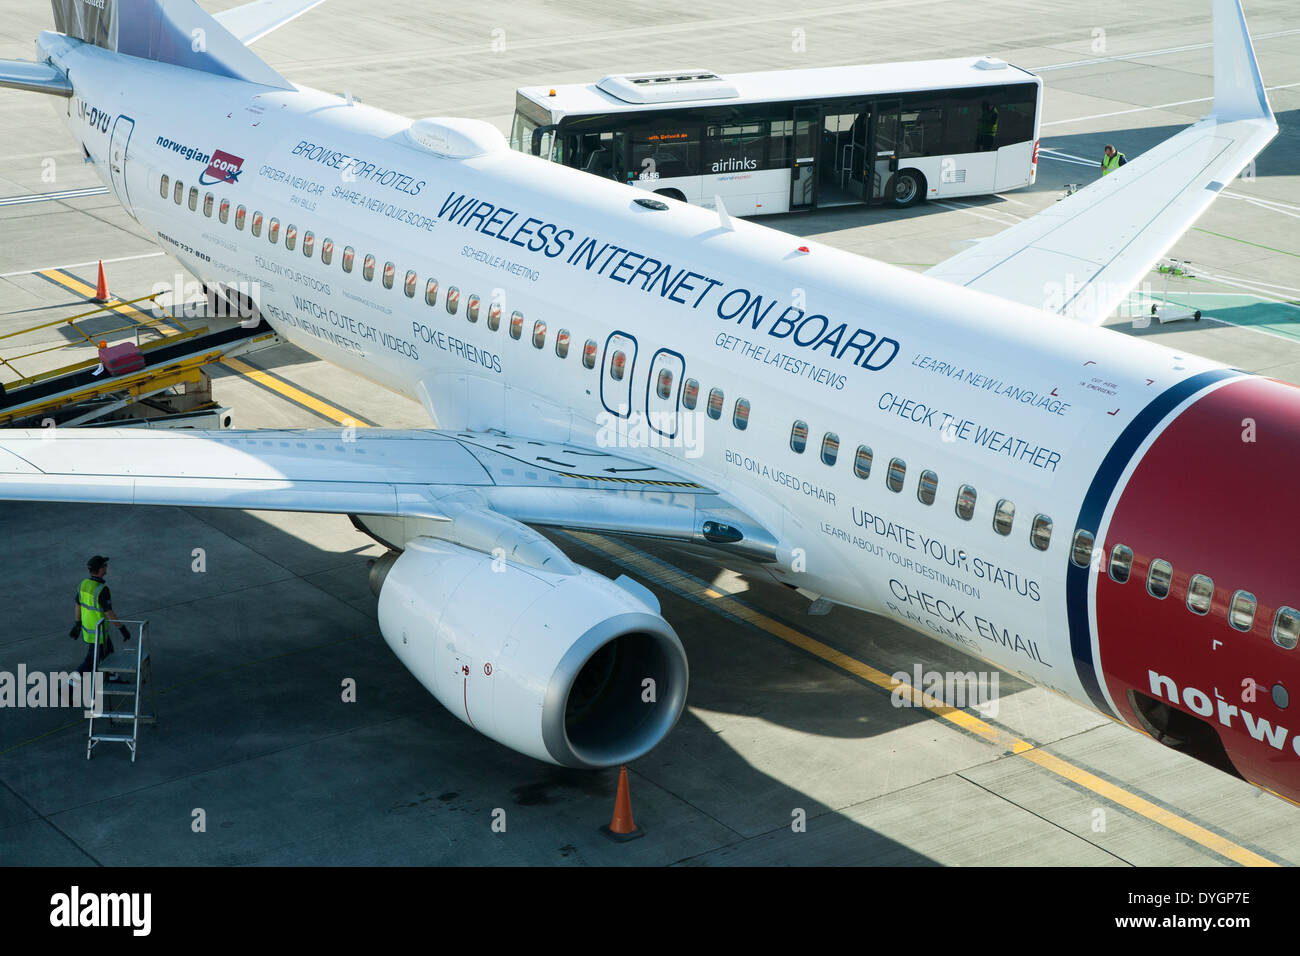 Norwegian.com airplane / plane painted to promote / advertise FREE mobile internet WIFI for passengers on the aircraft - Stock Image